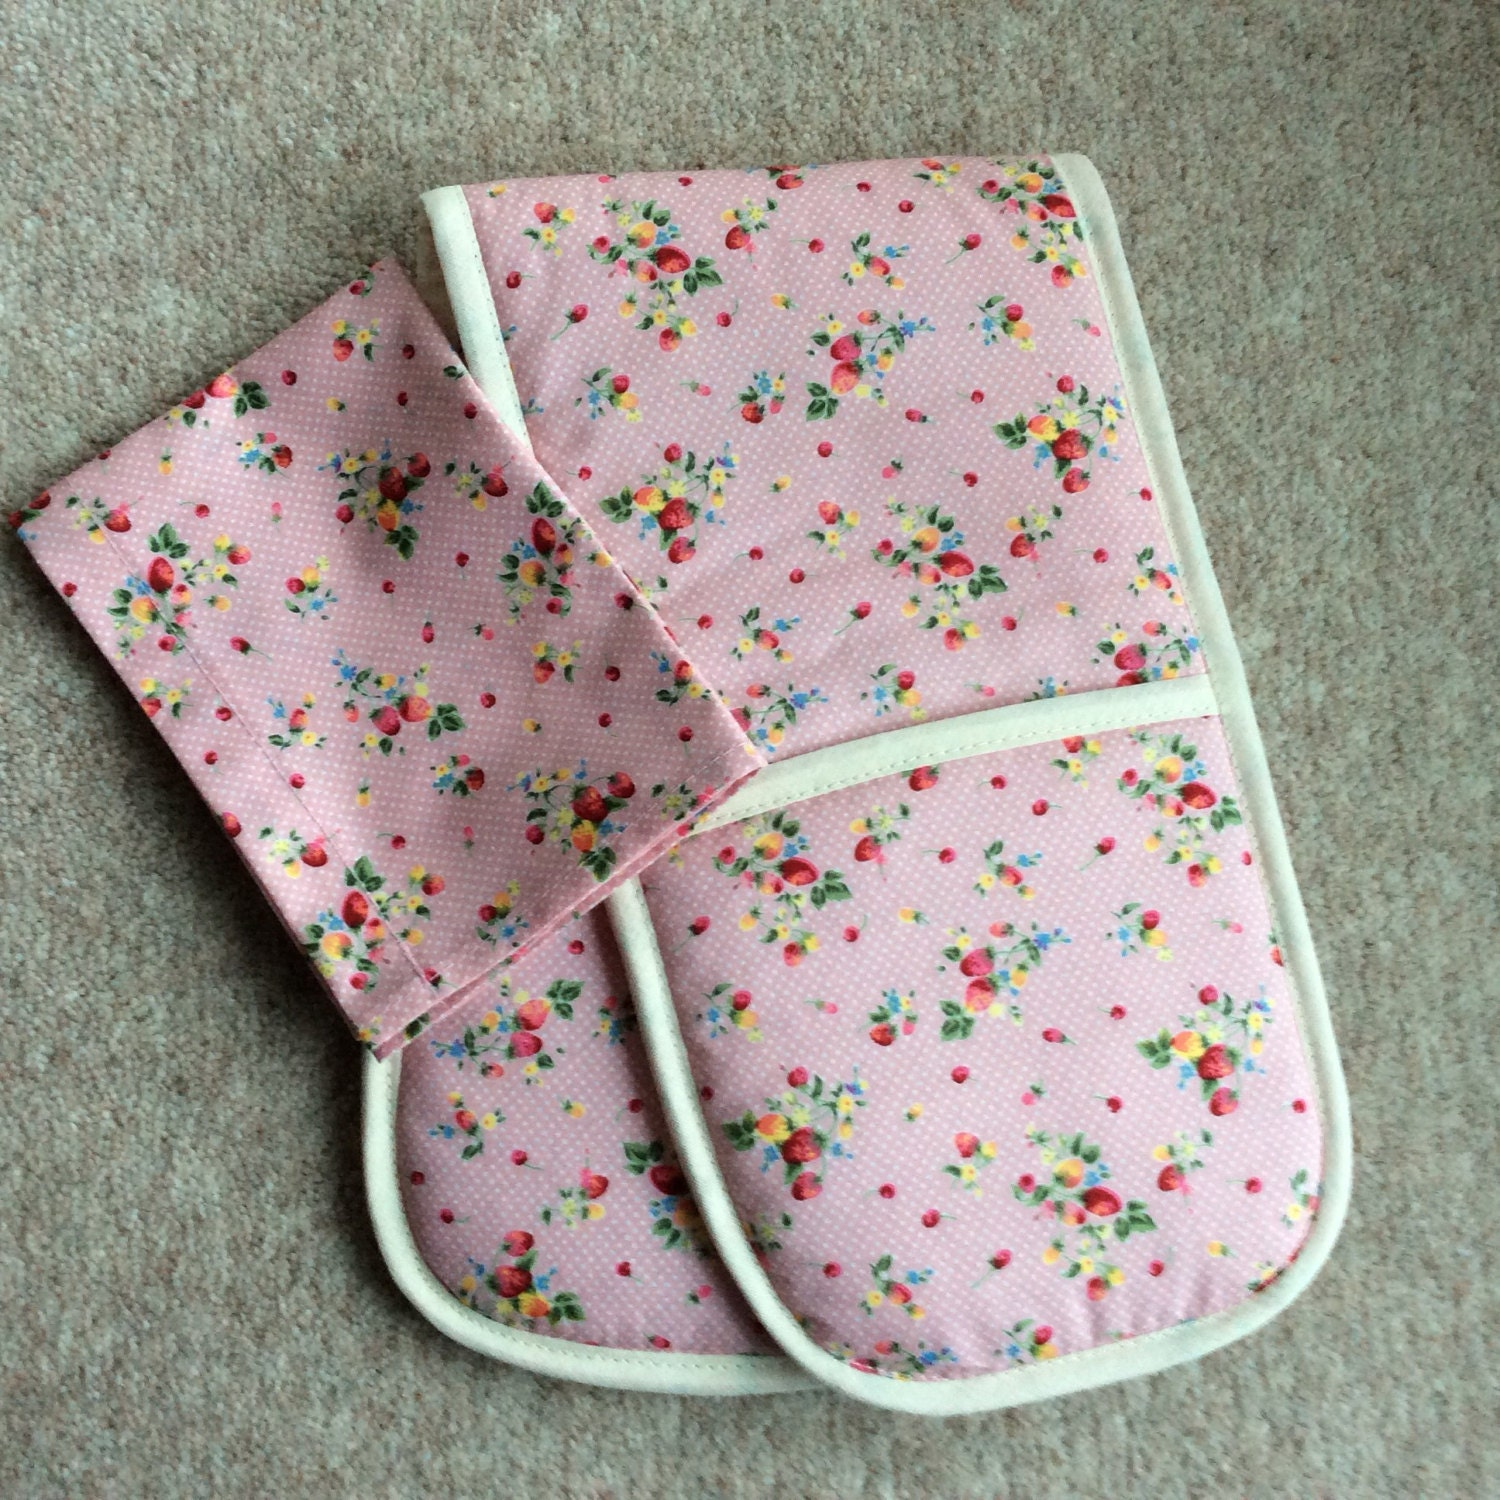 Toy Oven Glove and Tea Towel. Home corner toy kitchen. Dusky pink strawberries toddler gift.